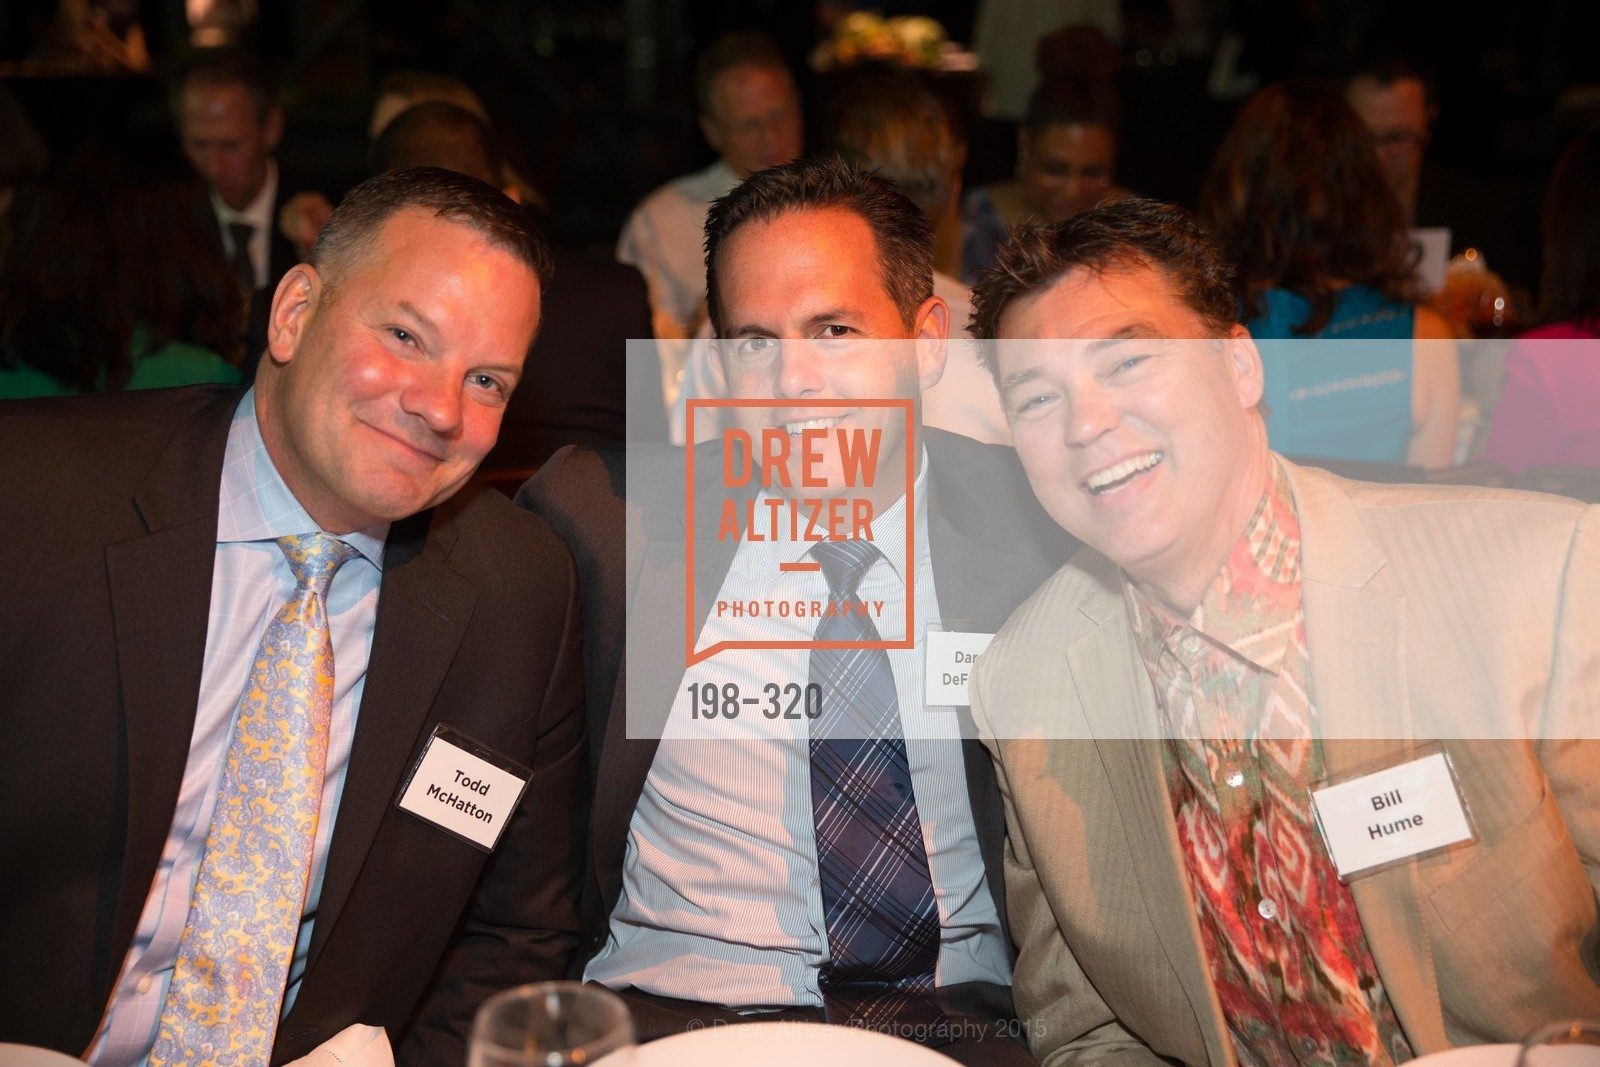 Todd McHatton, Derek DeFreece, Bill Hume, SF - Marin Food Bank Presents ONE BIG TABLE, SF- Marin Food Bank. 900 Pennsylvania Ave, September 26th, 2015,Drew Altizer, Drew Altizer Photography, full-service agency, private events, San Francisco photographer, photographer california